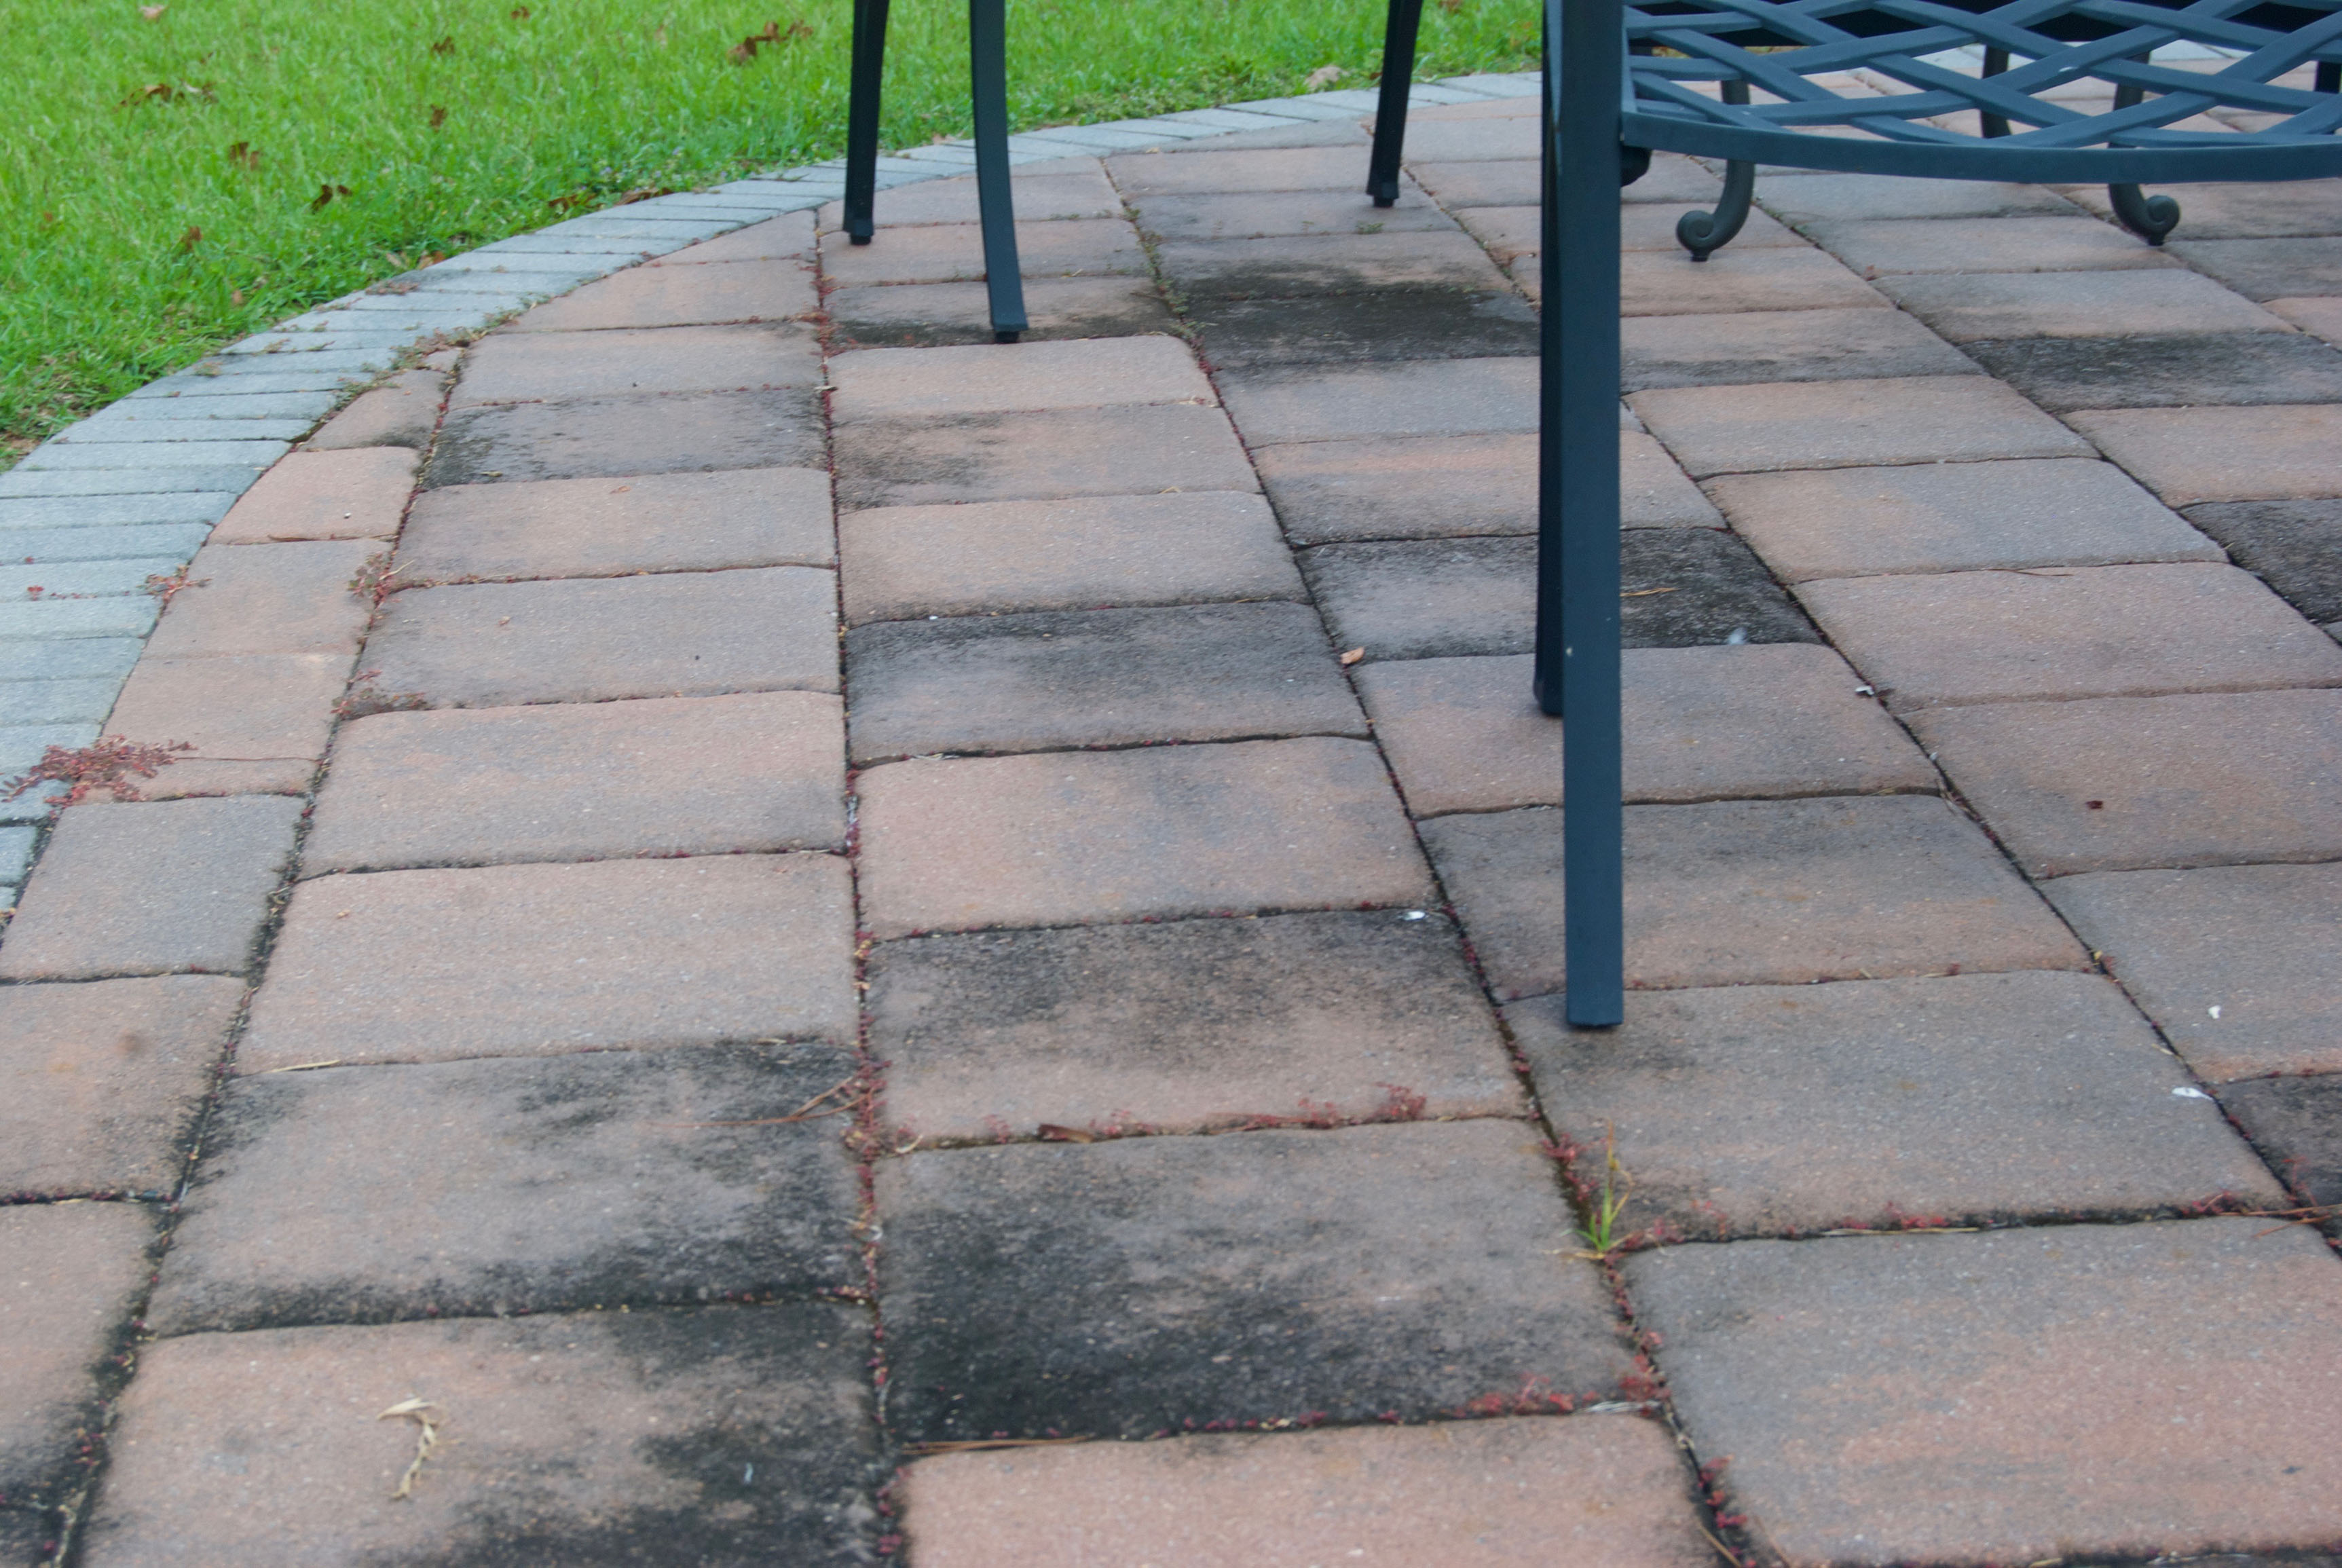 How To Prevent Mold And Mildew From Growing On Your Patio The